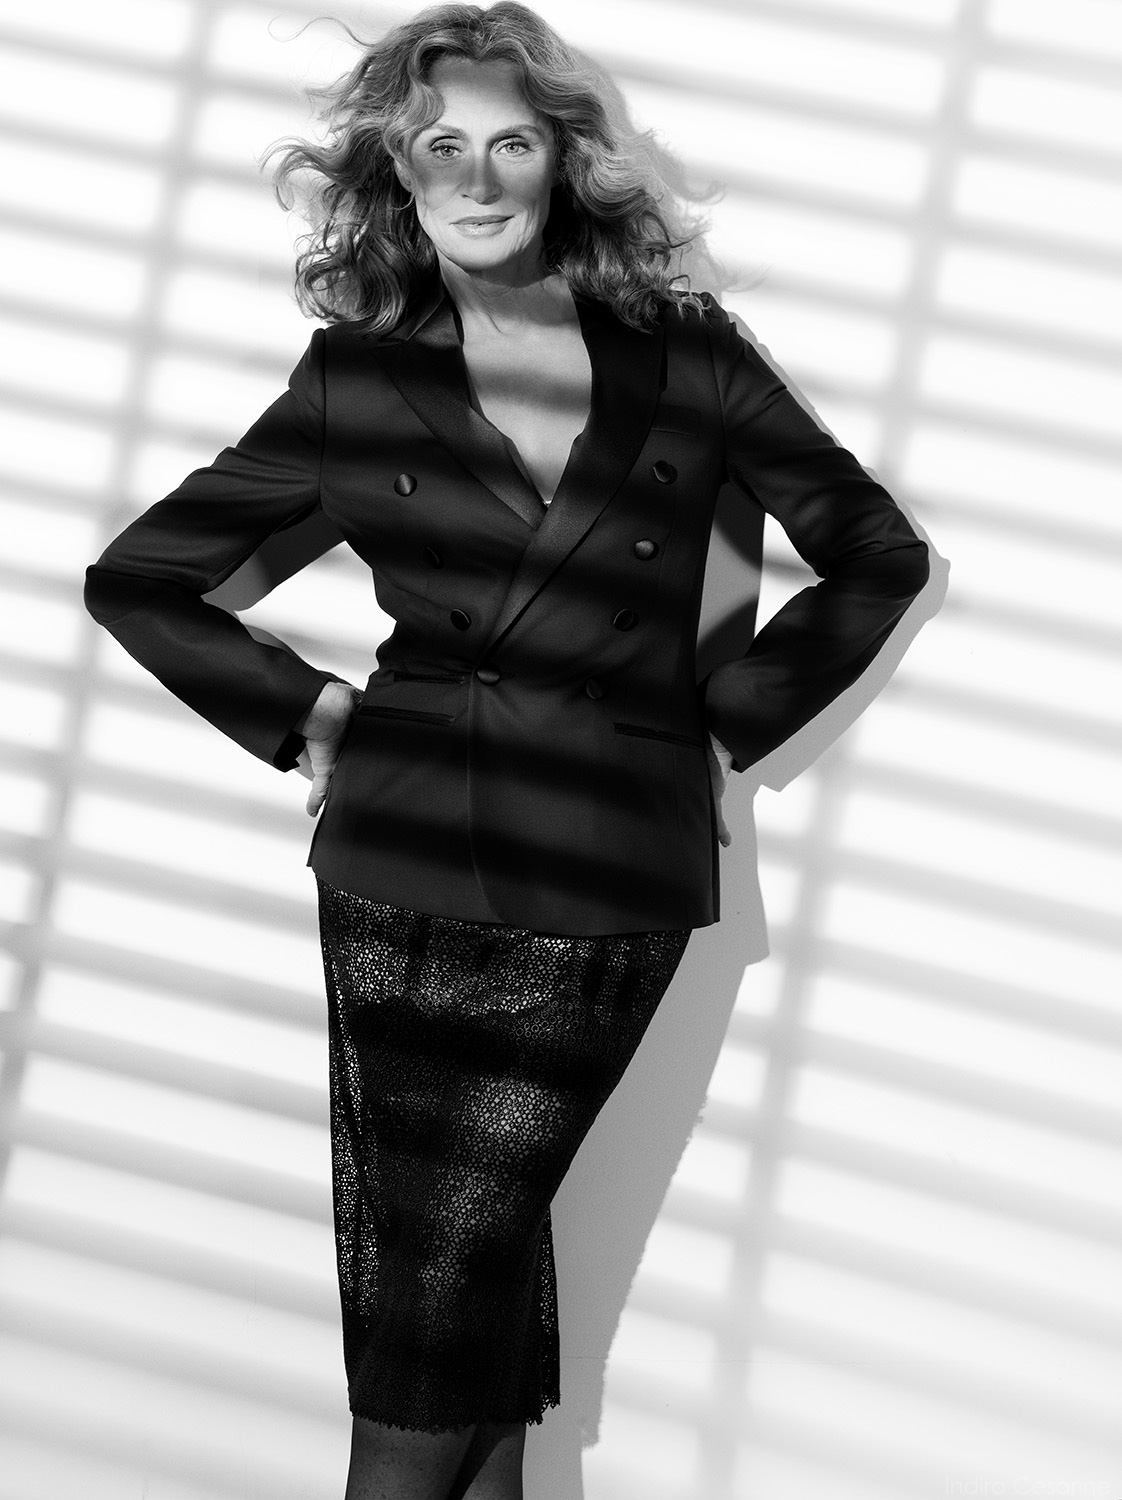 LAUREN-HUTTON-Photography-by-Indira-Cesarine-003.jpg